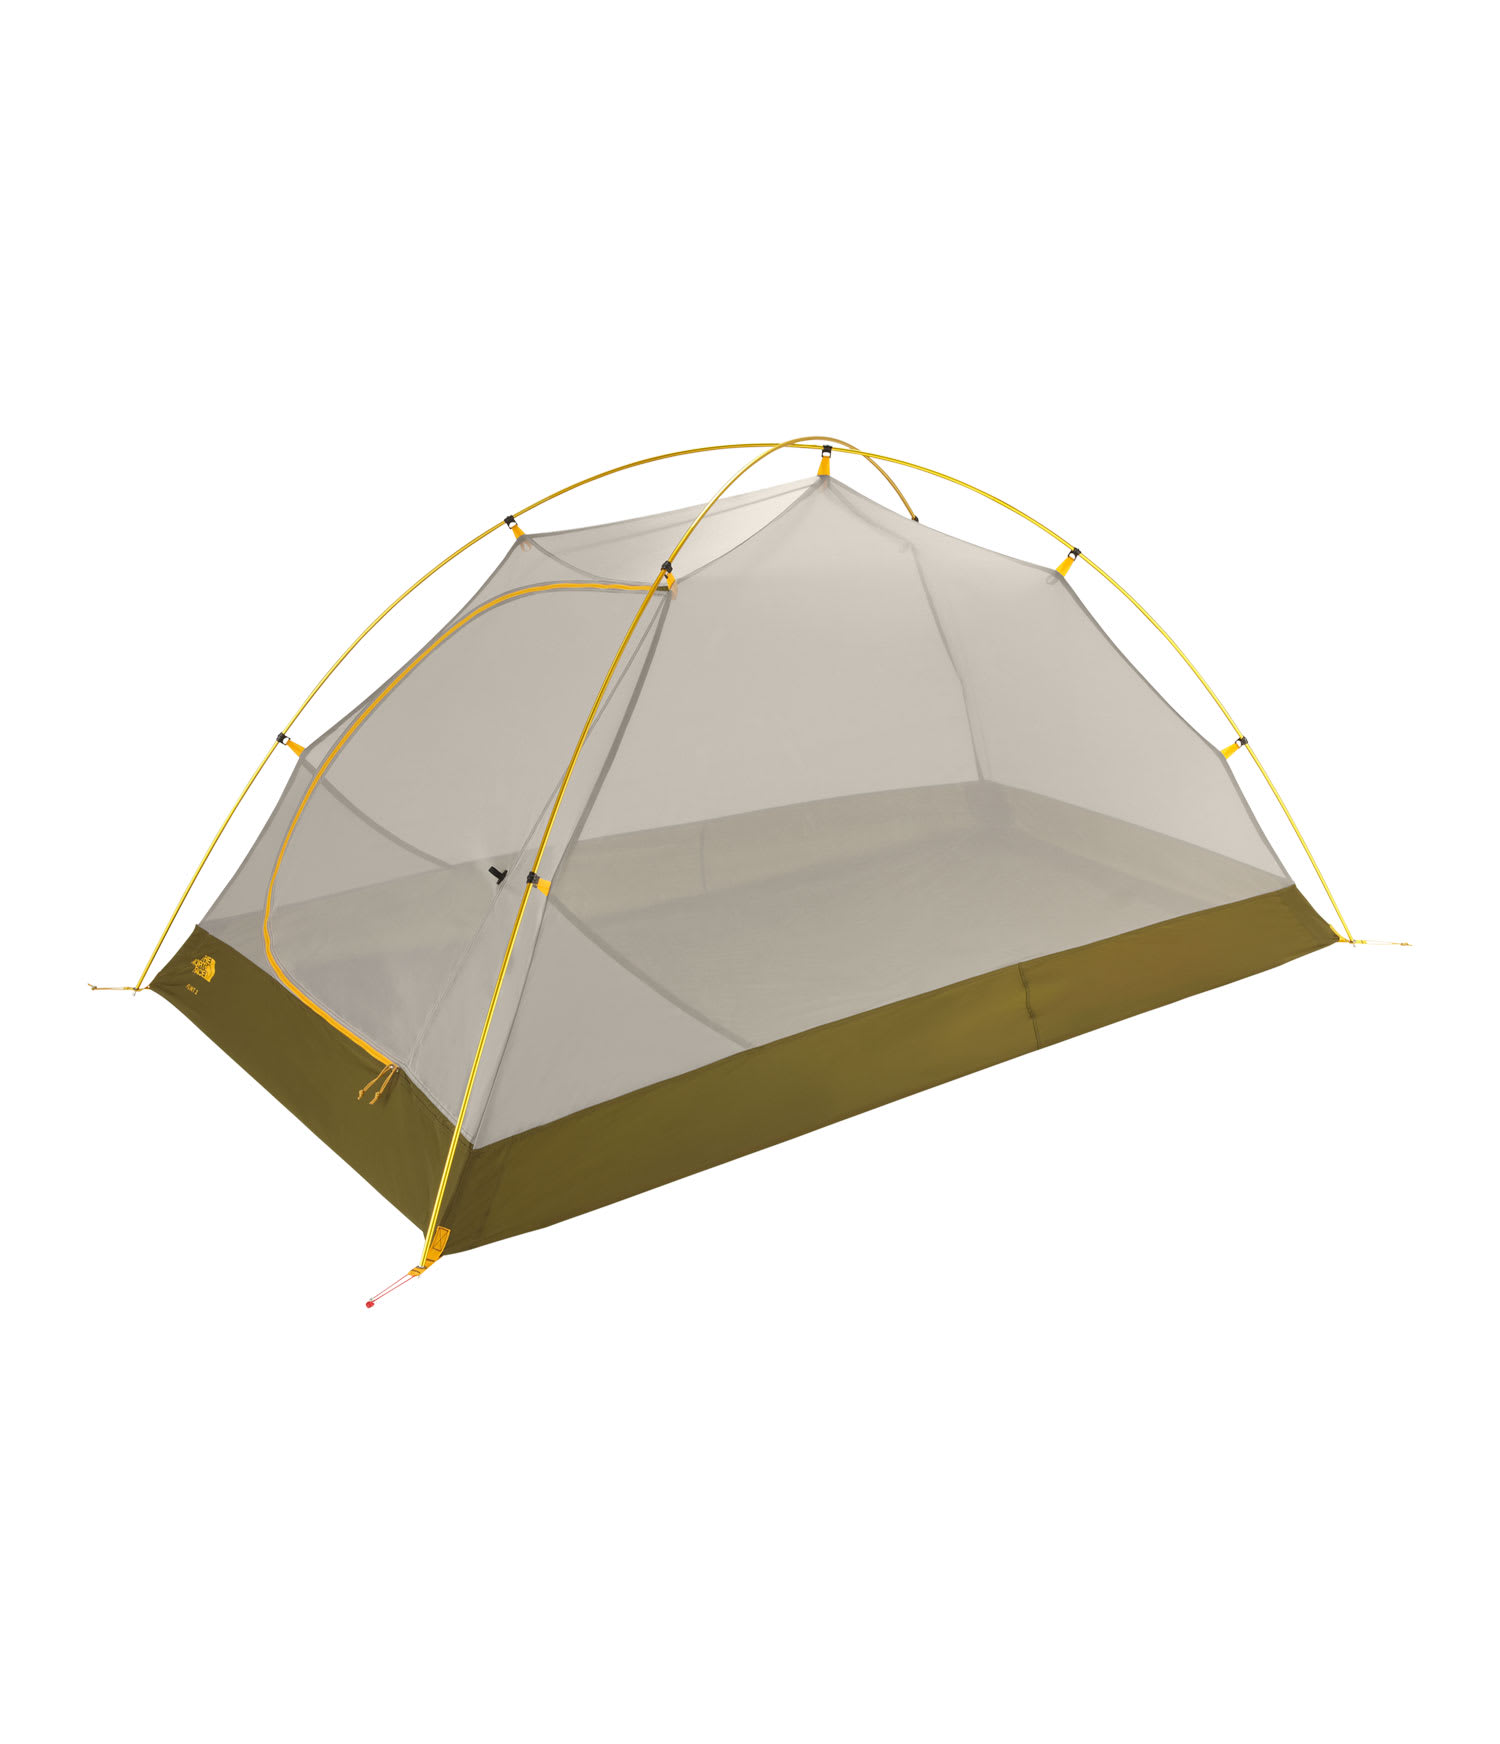 The North Face Flint 2 Bx 2 Person Tent - thumbnail 1  sc 1 st  The House & On Sale The North Face Flint 2 Bx 2 Person Tent up to 65% off